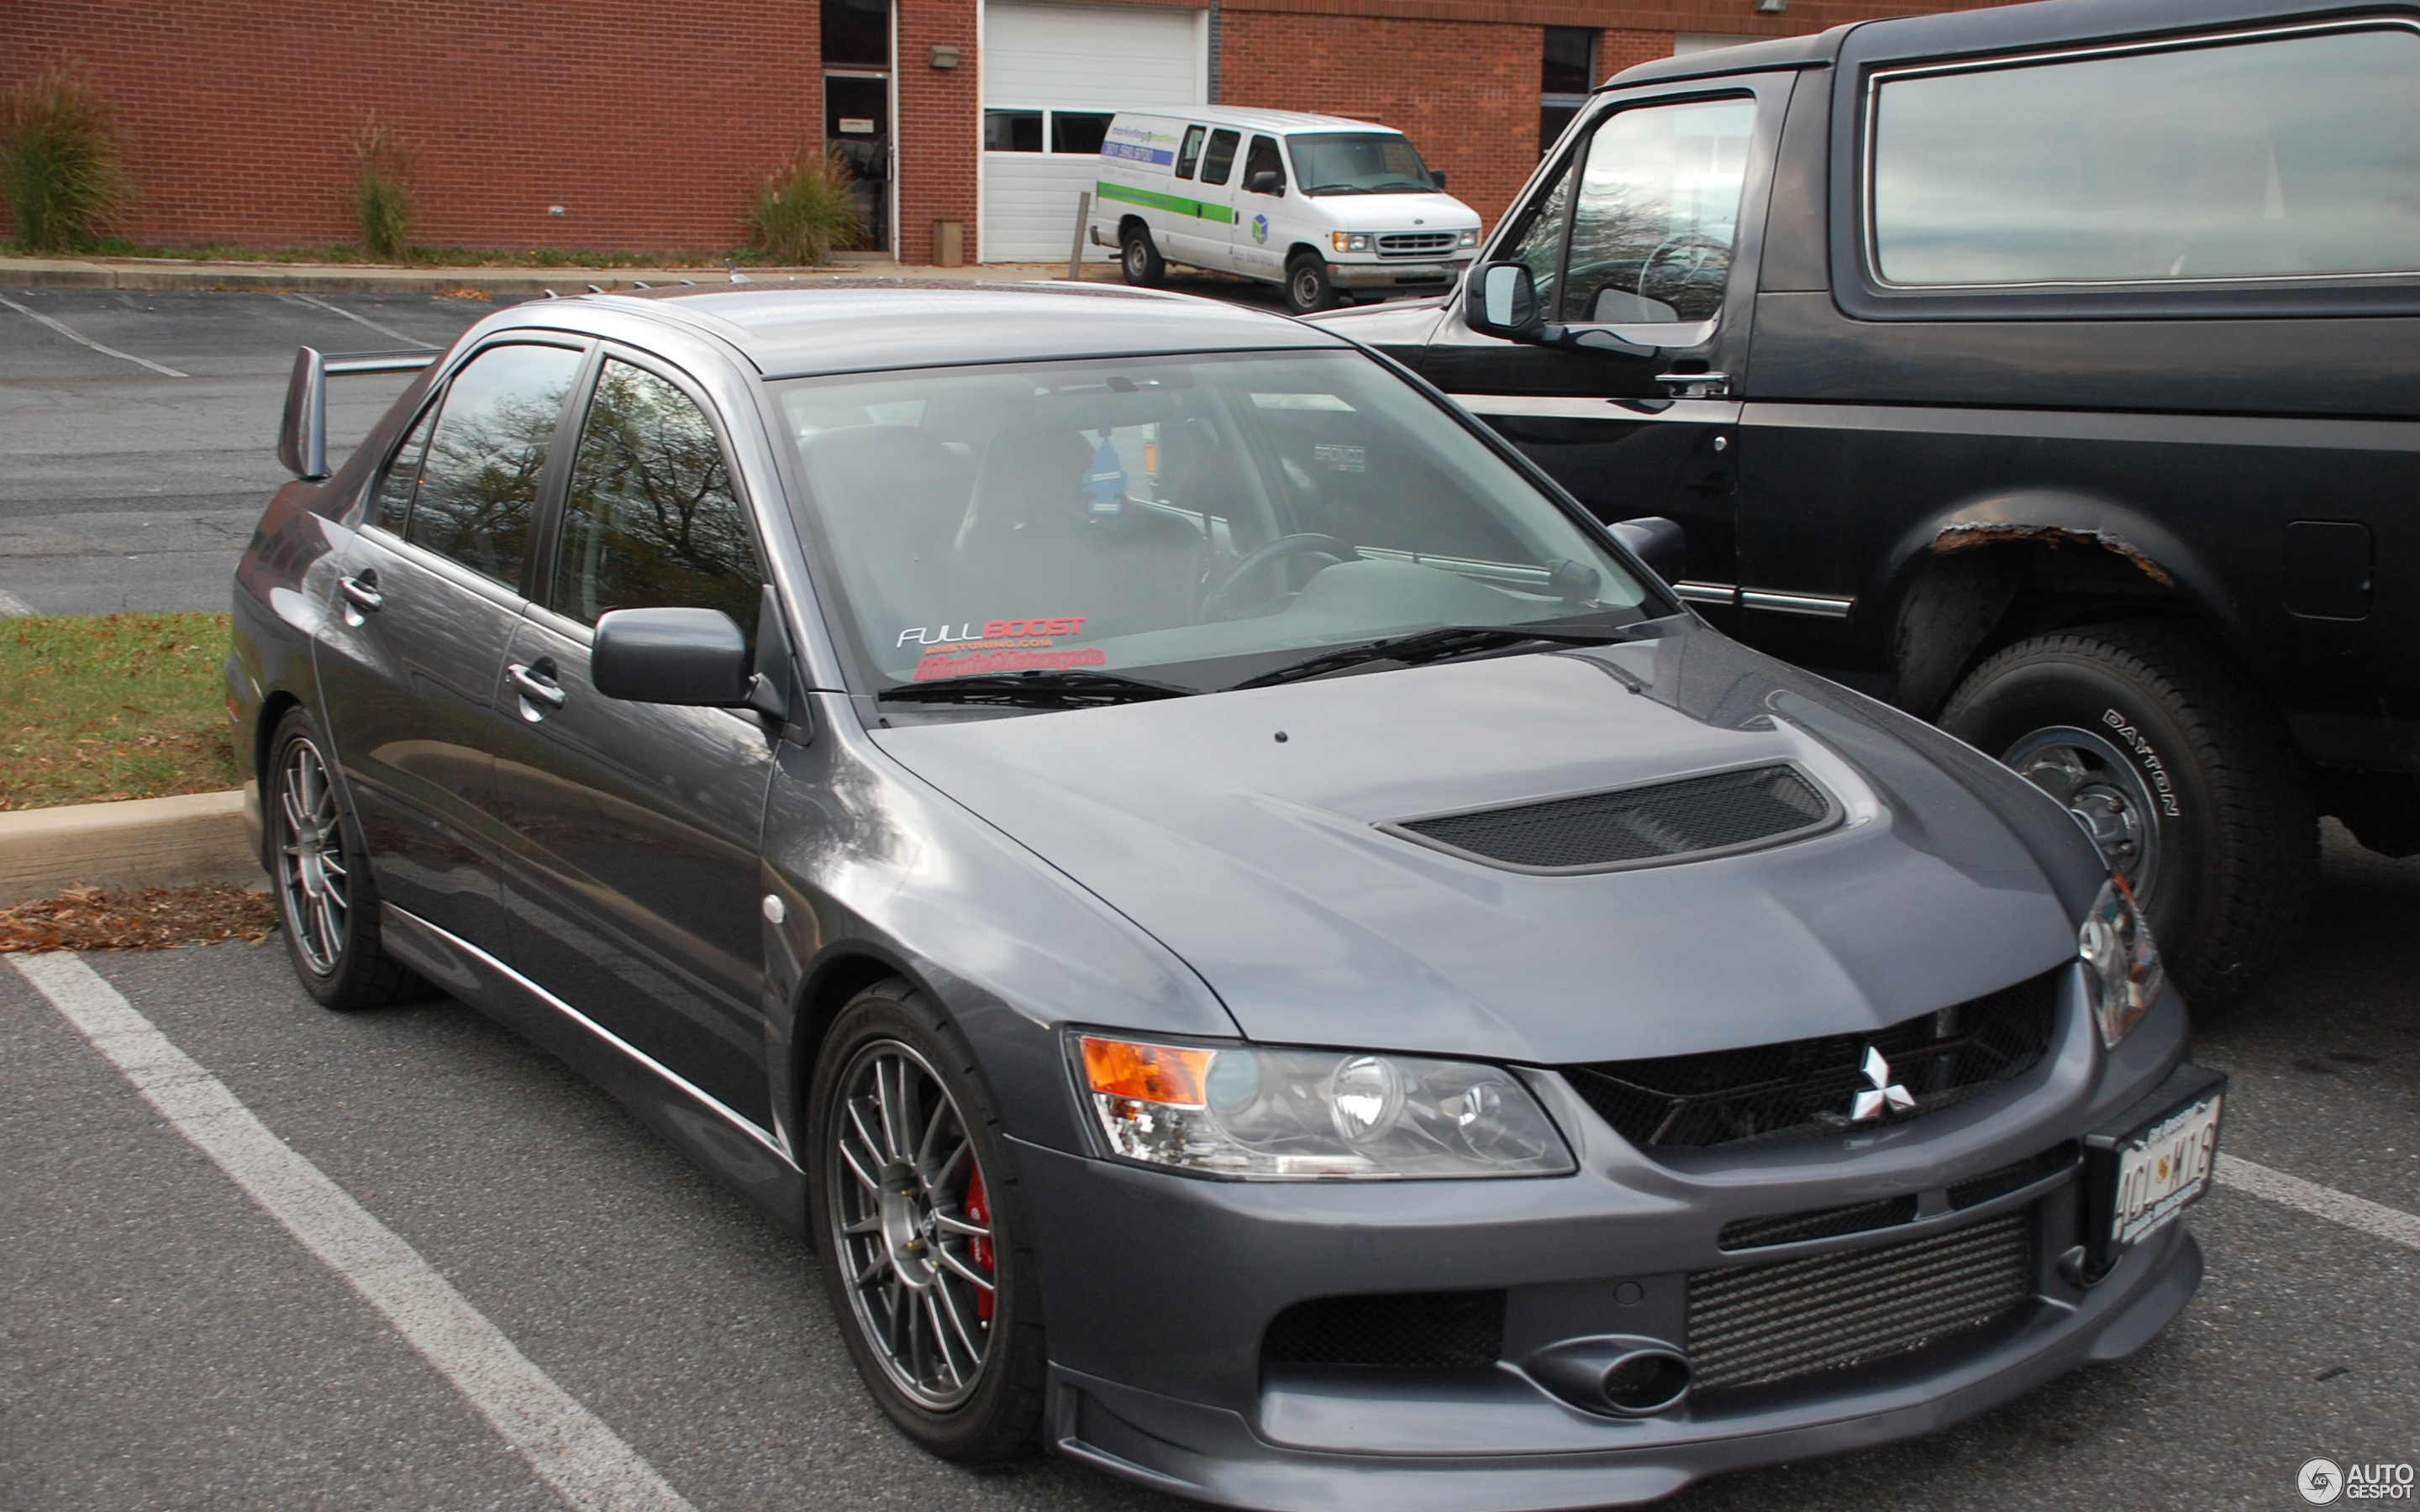 ampg slideshowstop slideshow sold index product for mitsubishi sale zoom out start lancer evolution evo